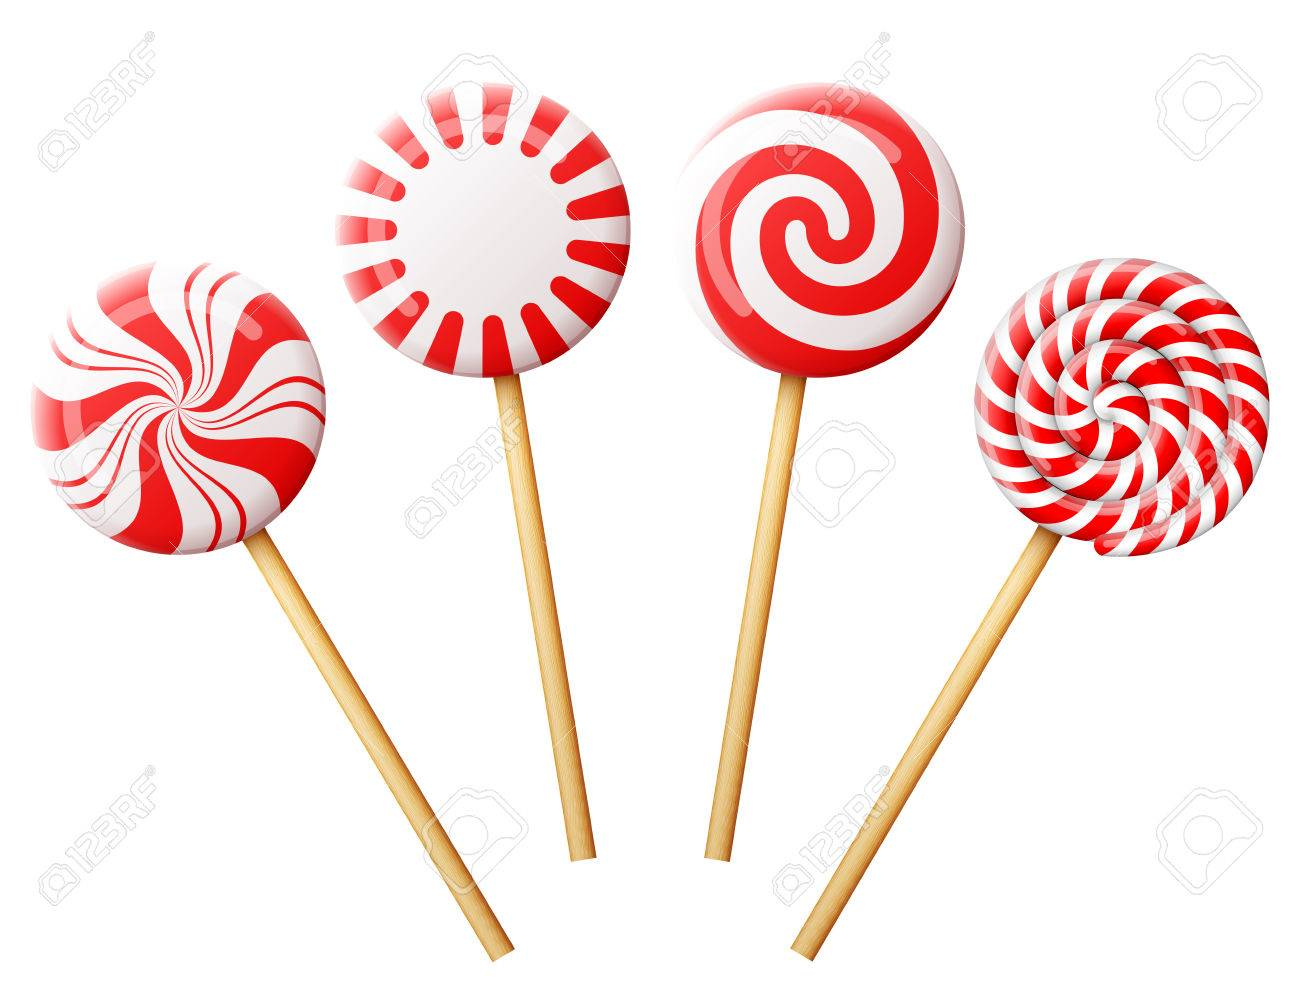 Christmas Candy.Set Of Christmas Candy On Wooden Stick Striped Peppermint Lollipops